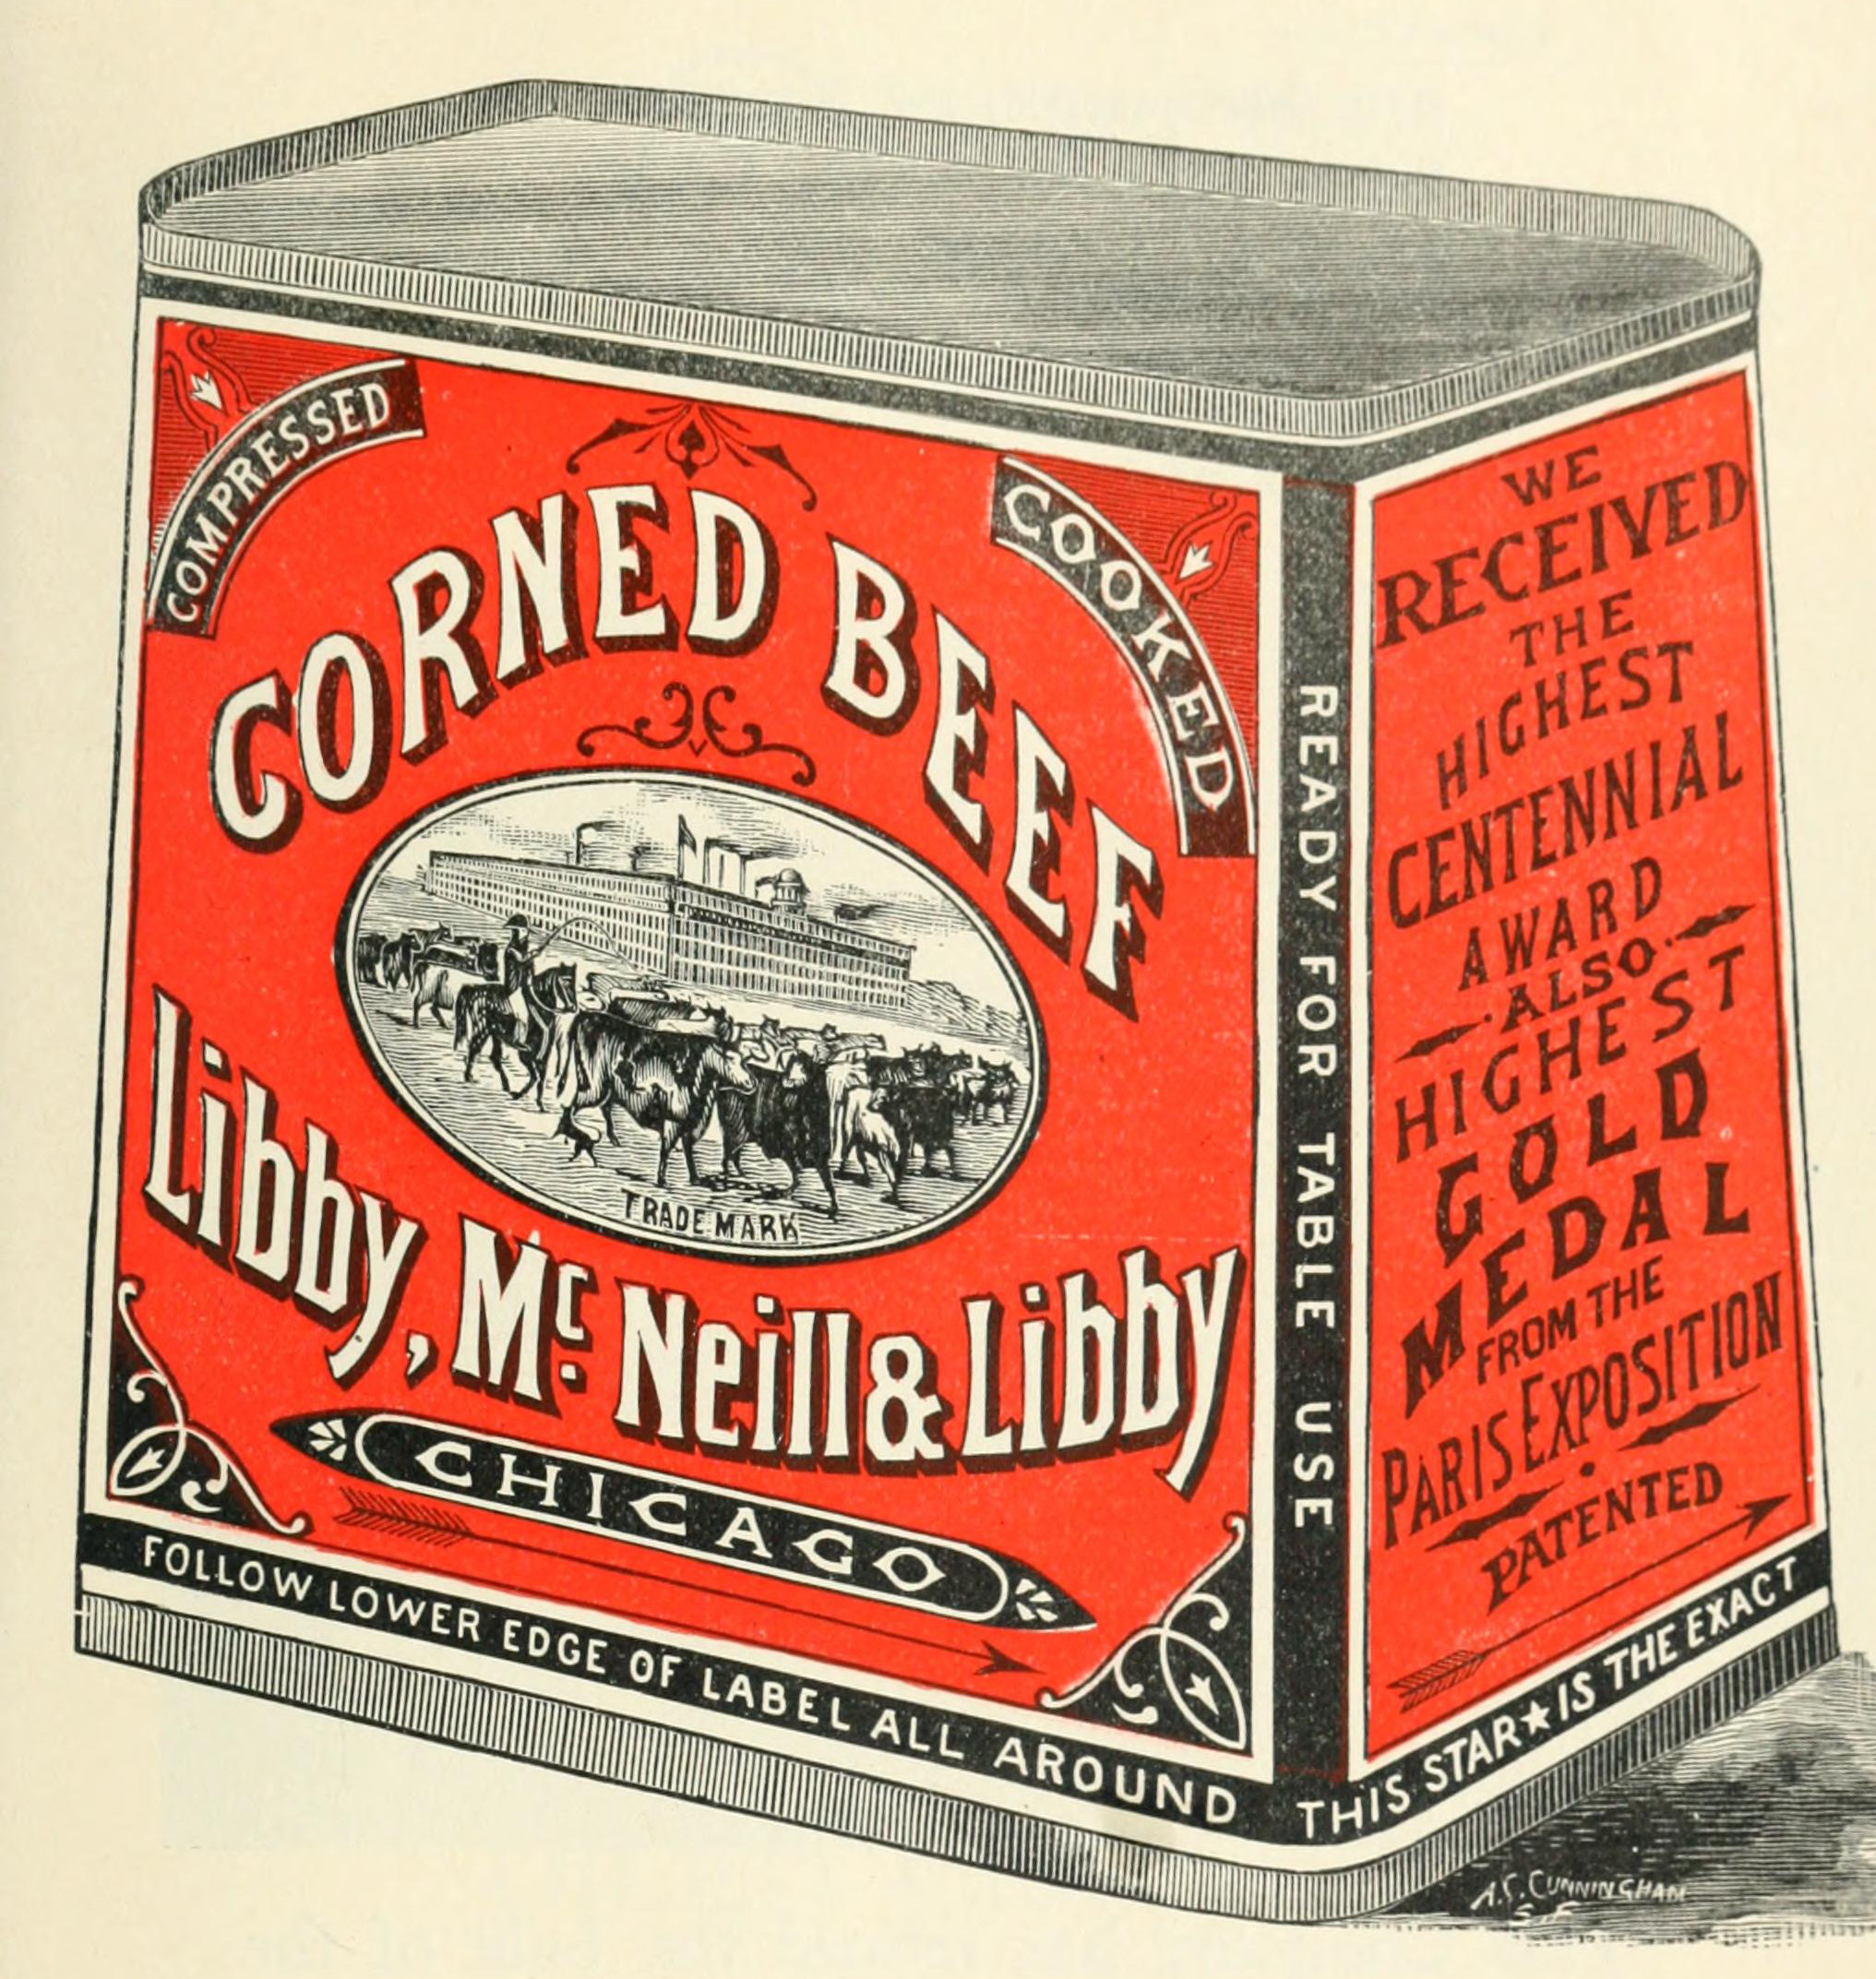 FileLibby McNeill  Libby Corned Beef 1898jpg